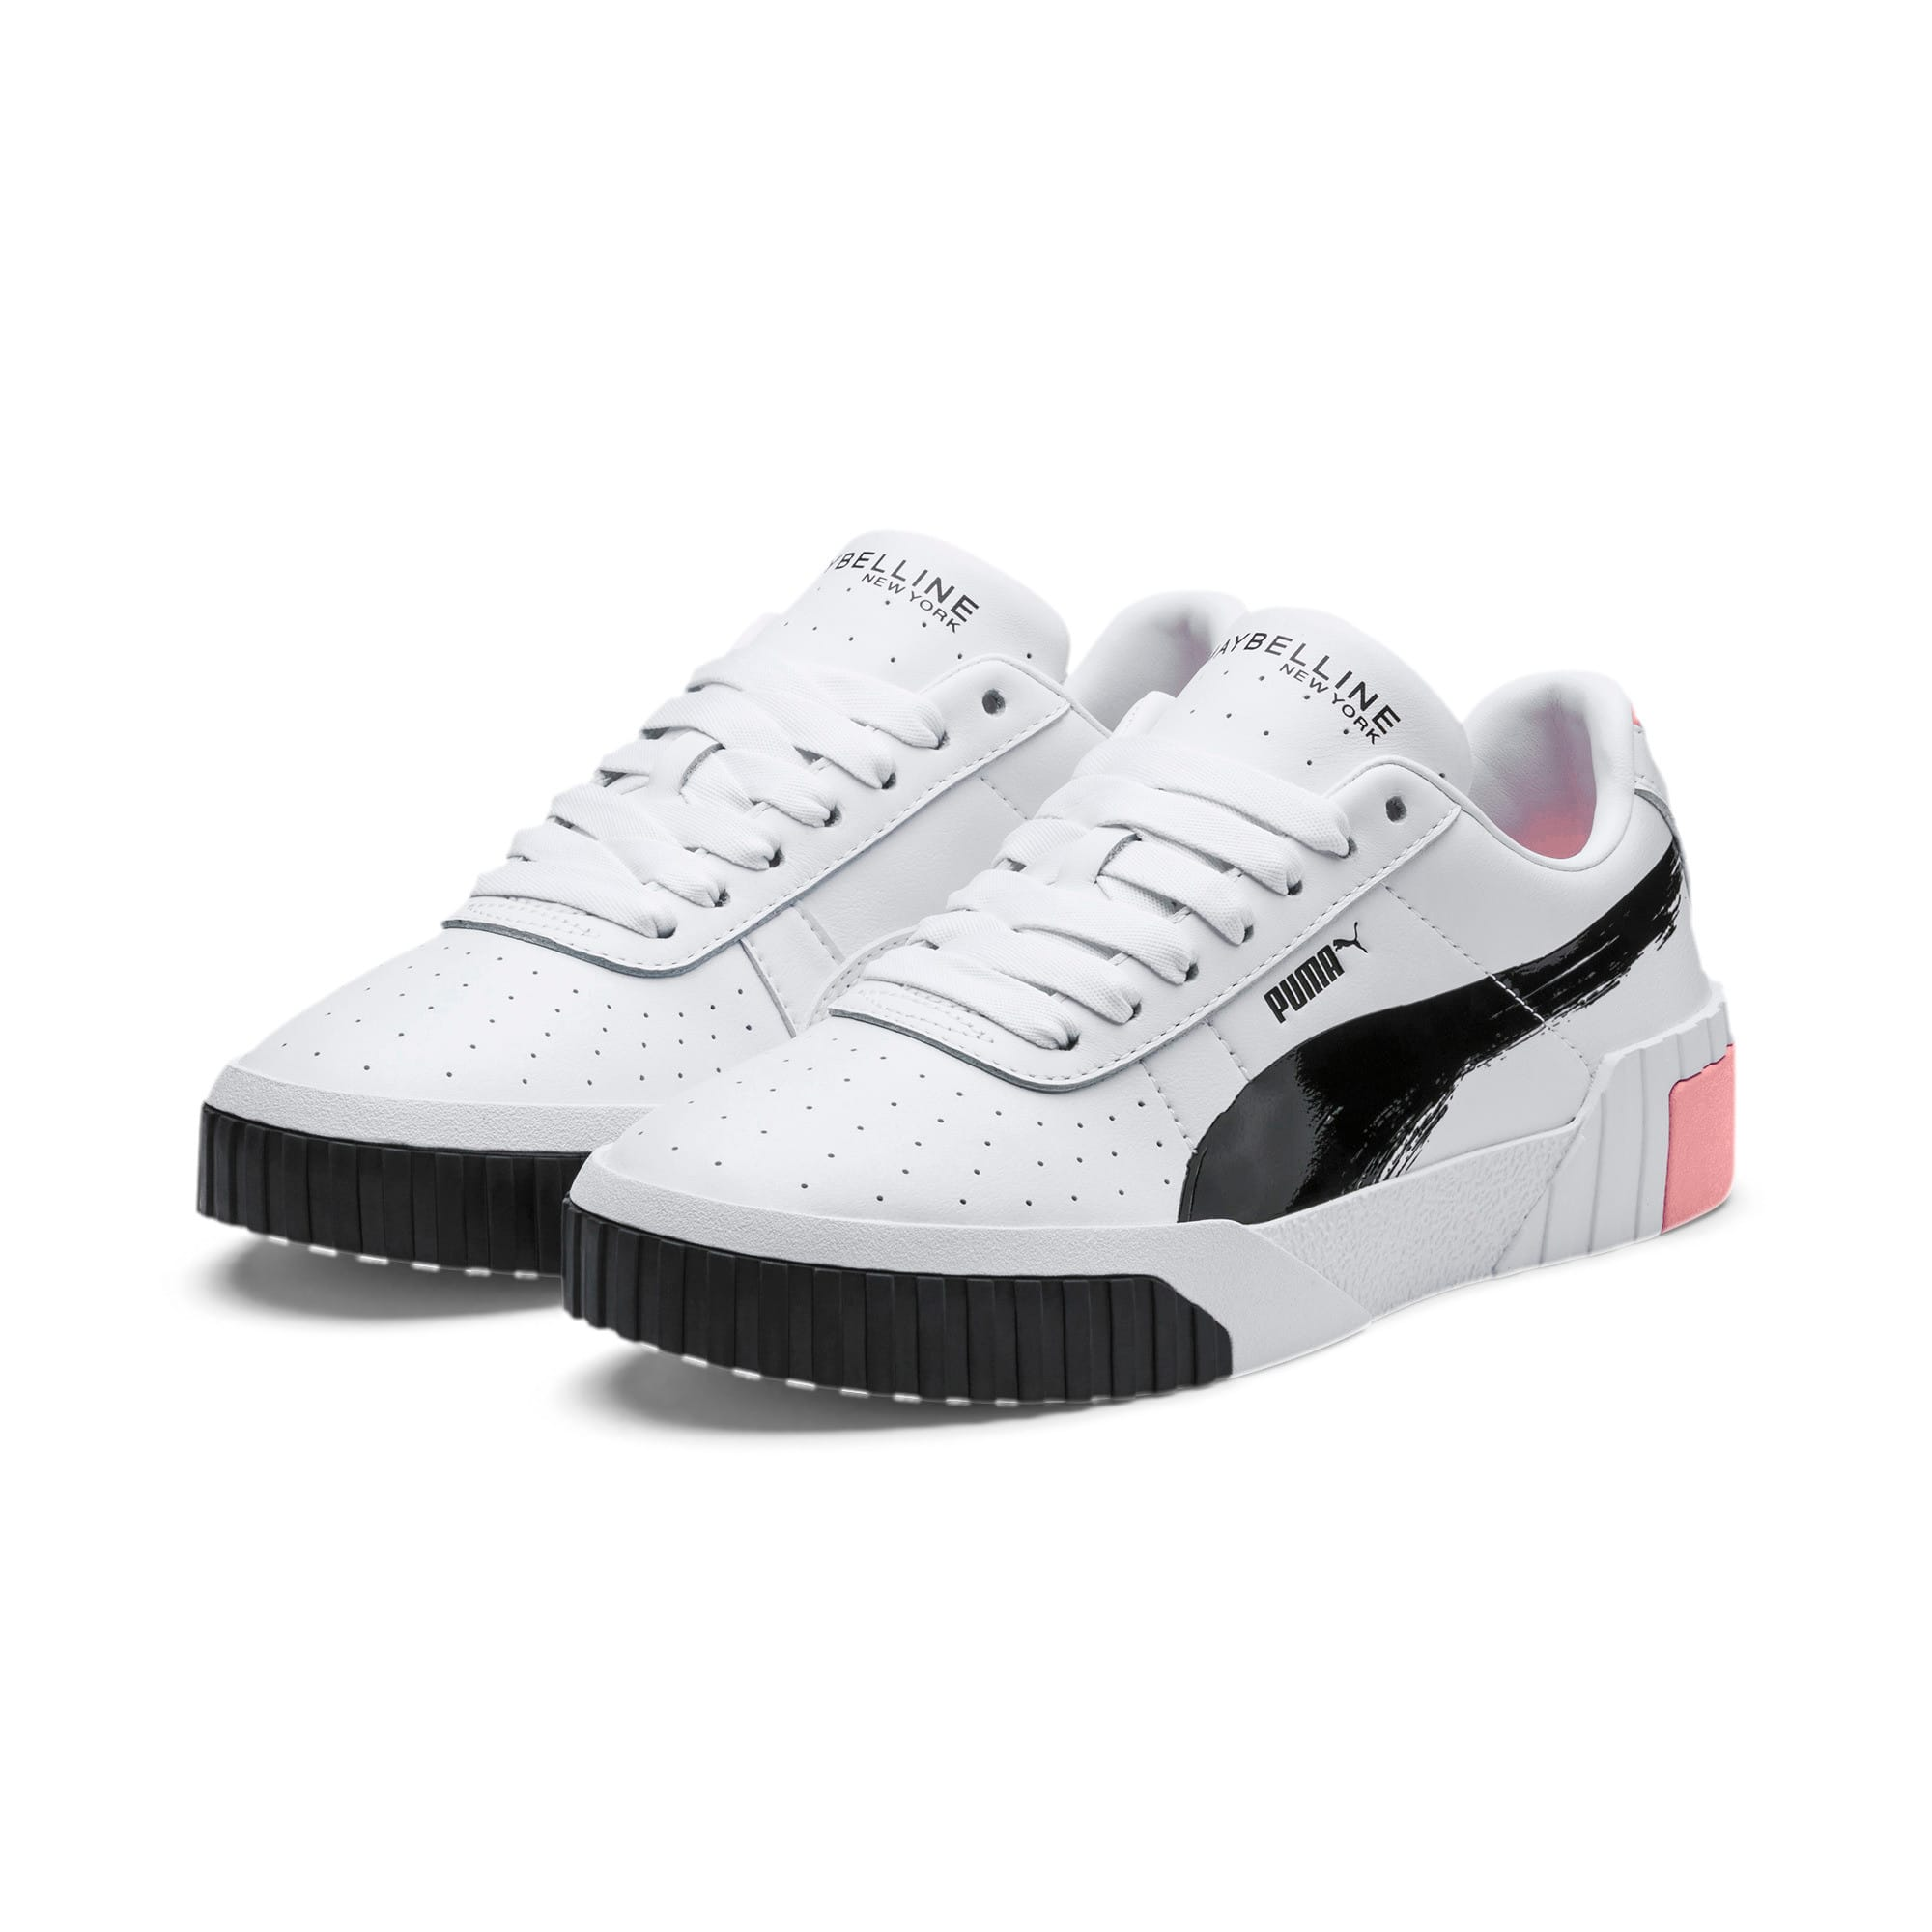 Thumbnail 2 of PUMA x MAYBELLINE Cali Women's Trainers, Puma White-Puma Black, medium